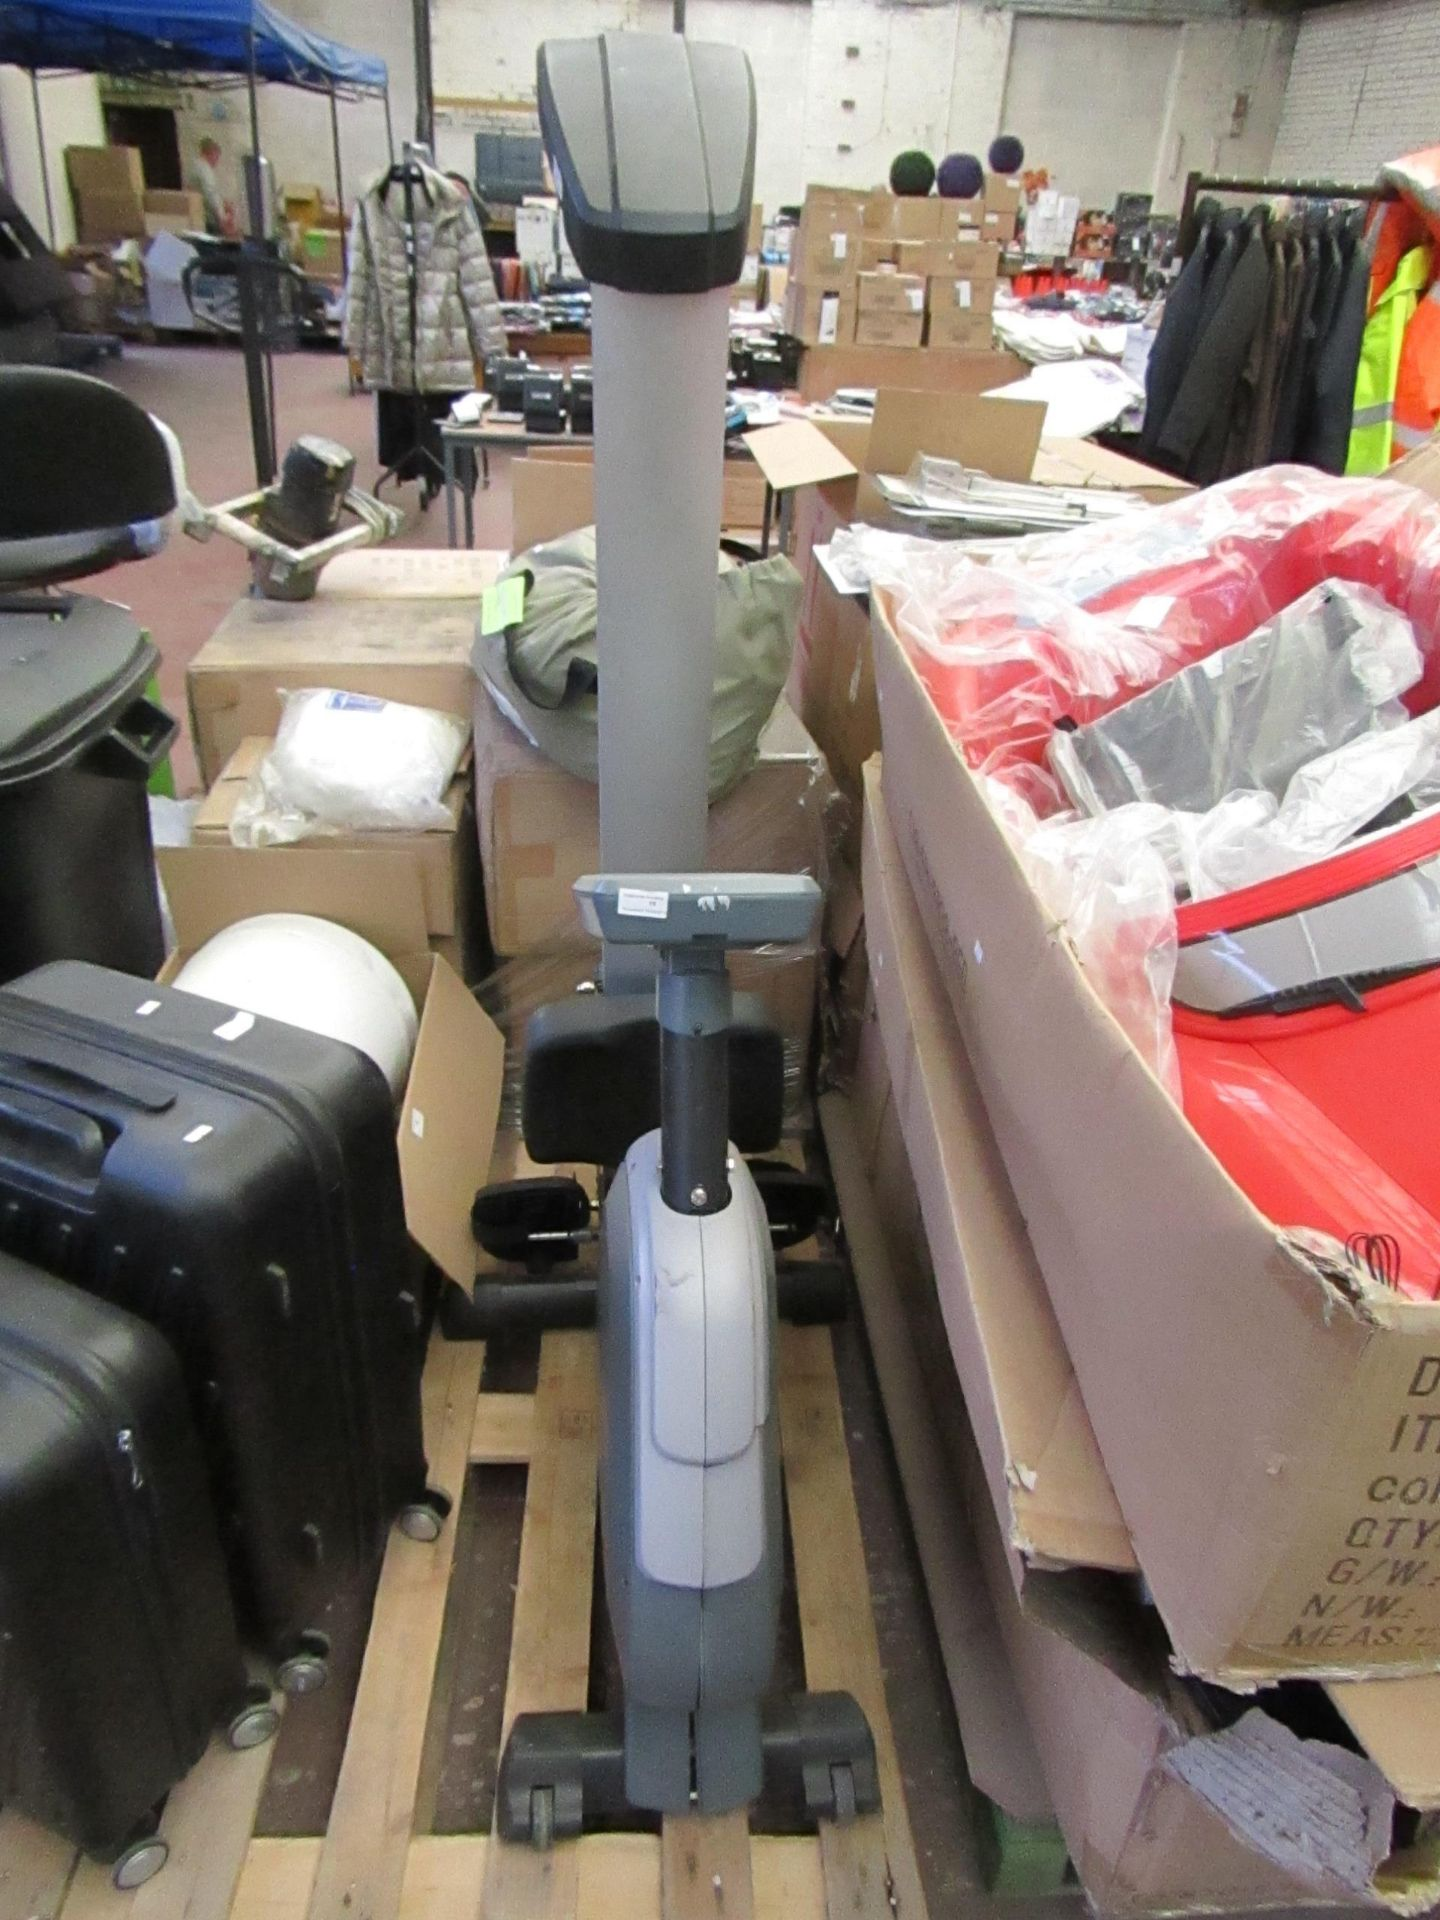 Lot 10 - Kettler Axos rowing machine with LCD interactive display, untested.